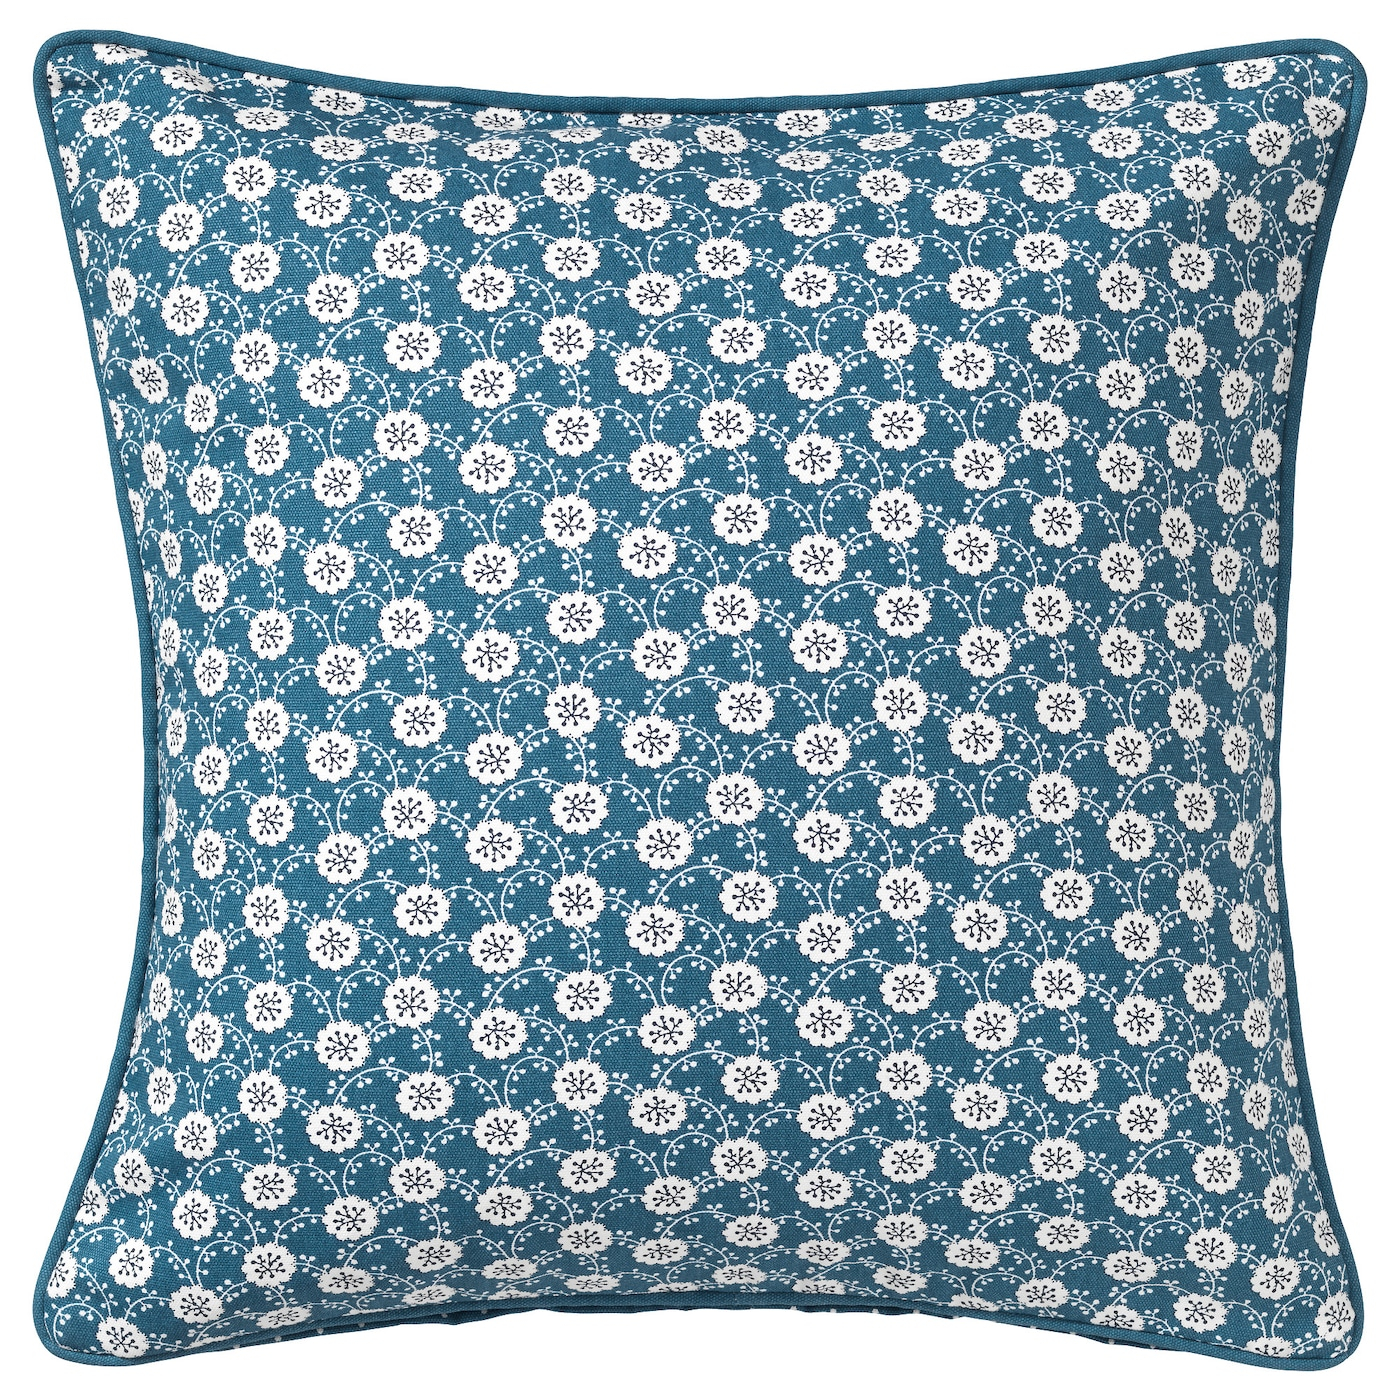 L vkoja cushion cover blue white 50x50 cm ikea for Housse coussin 60x60